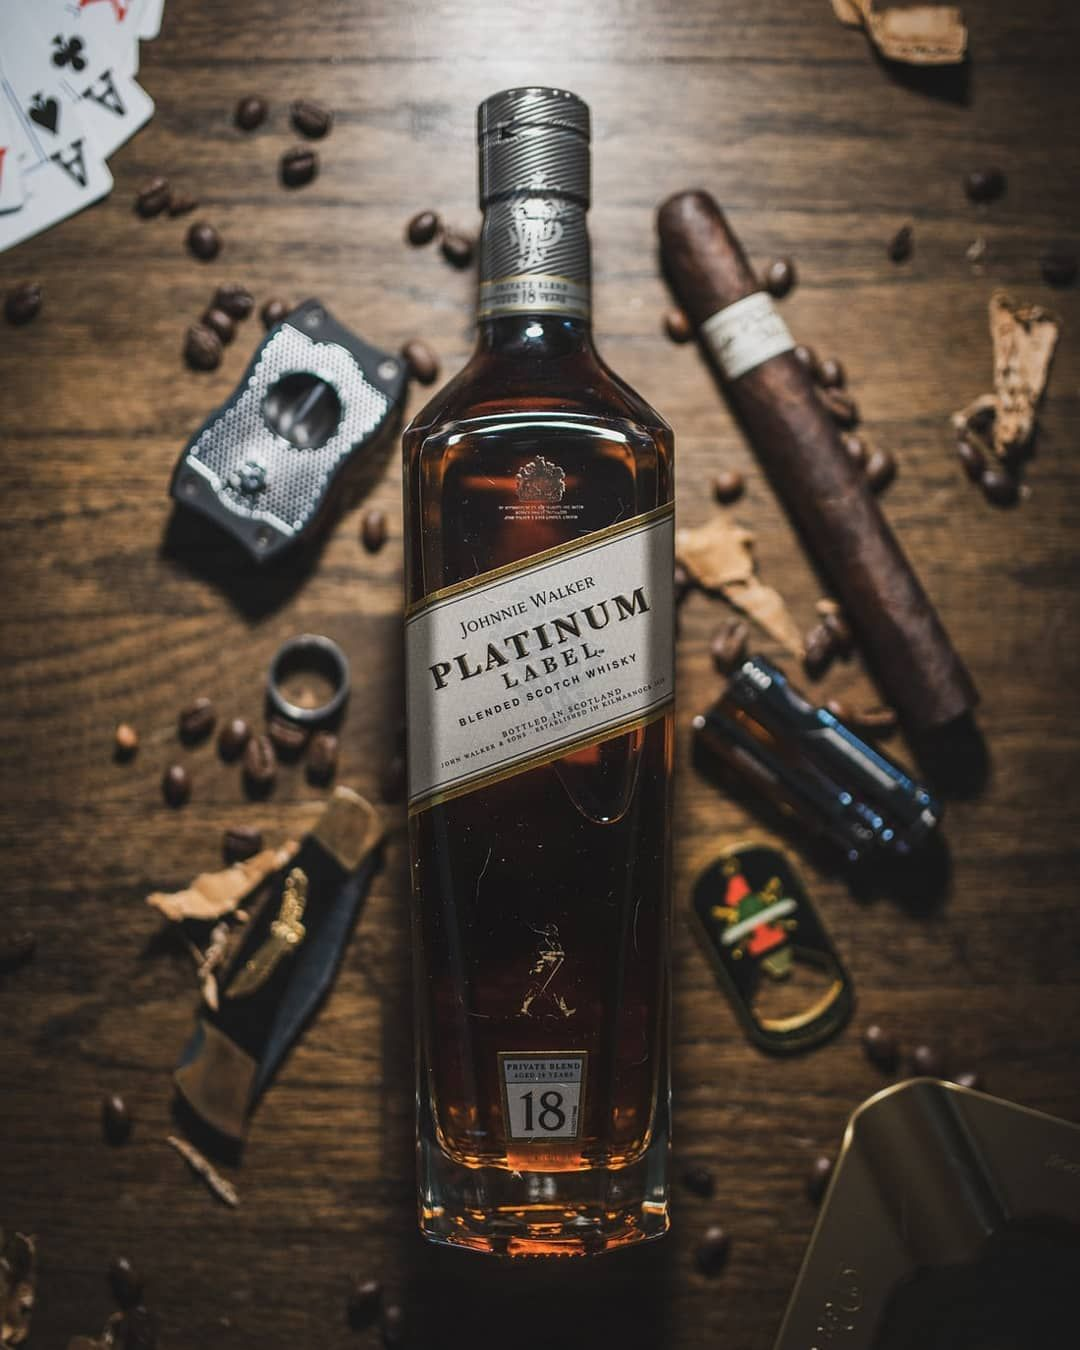 Shots ✌🖤 . . #___captur_d_momentz #royalsoulphoto #foodie #drinks #lastnight #fun #johnniewalker #friendshipgoals #indoorshoot #recepies #hisar #haryana #takepart #joinus #mobilephotography #mobilephoto #color #shades # #party #lightroom #photoshop #attitude #light #mouthwatering  #majestic_people  #makeithappen  #indeed #moodygrams #creative  #marvelous_shotz